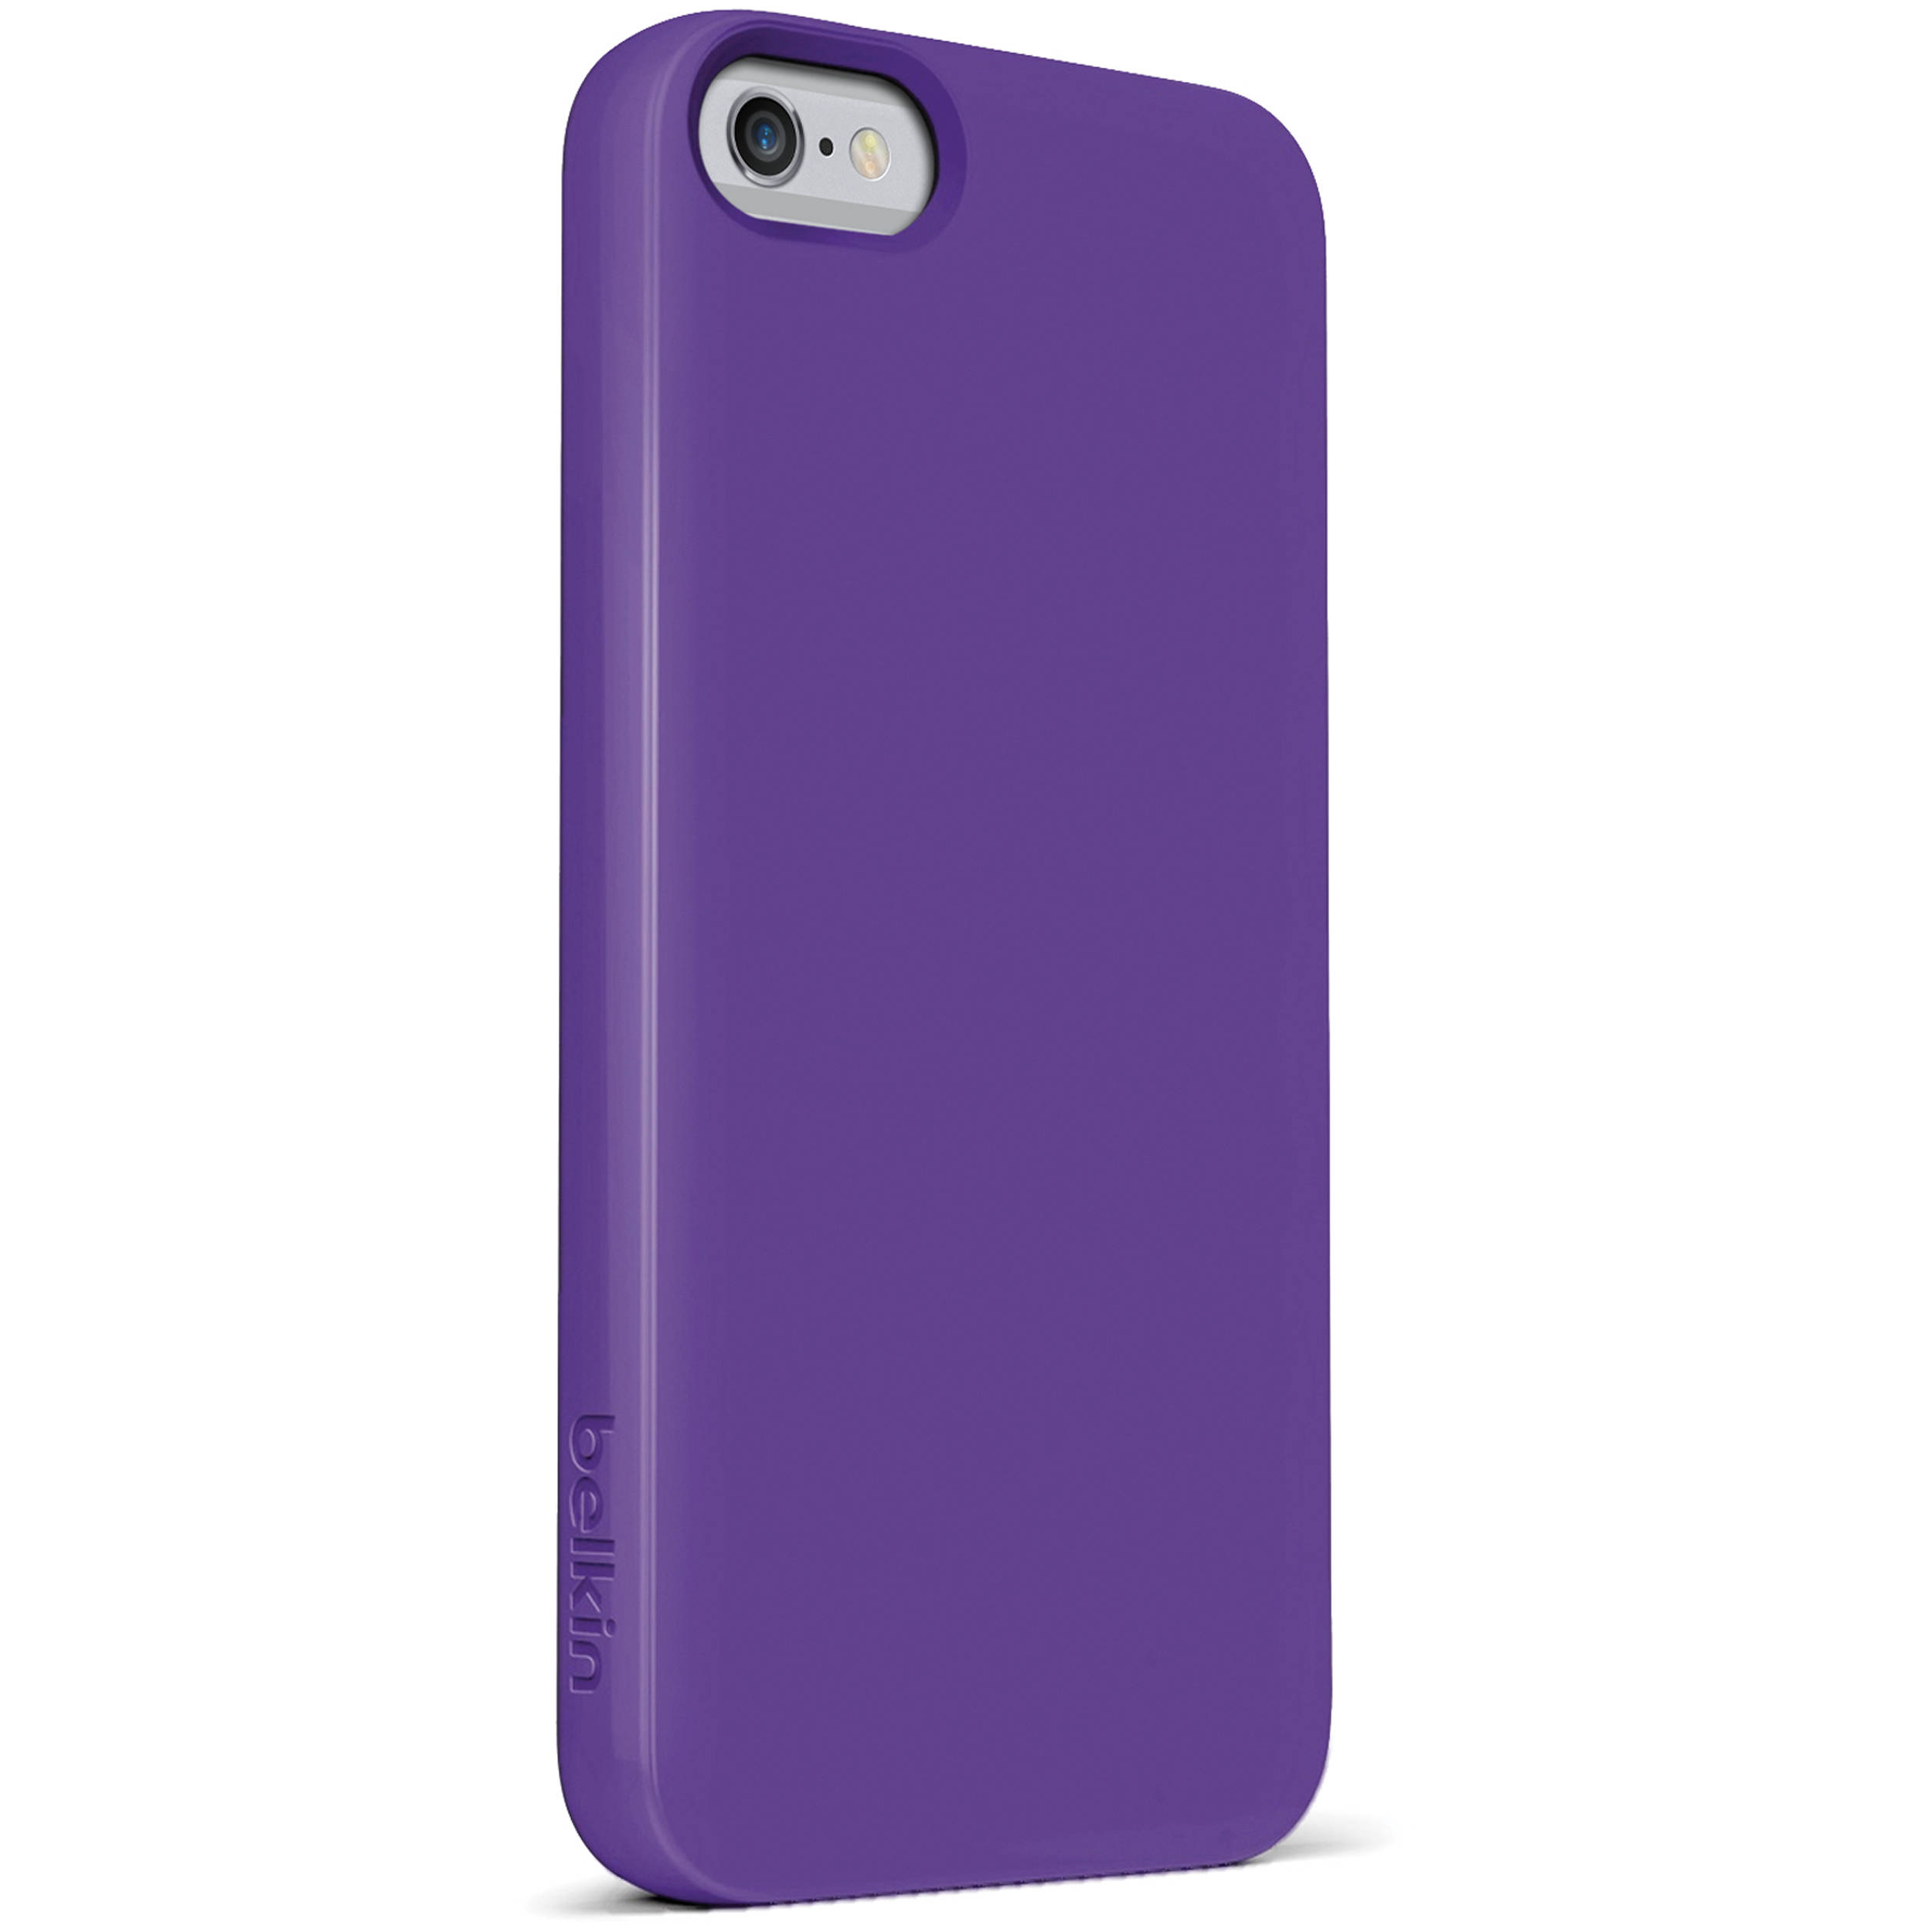 iphone 6 belkin case